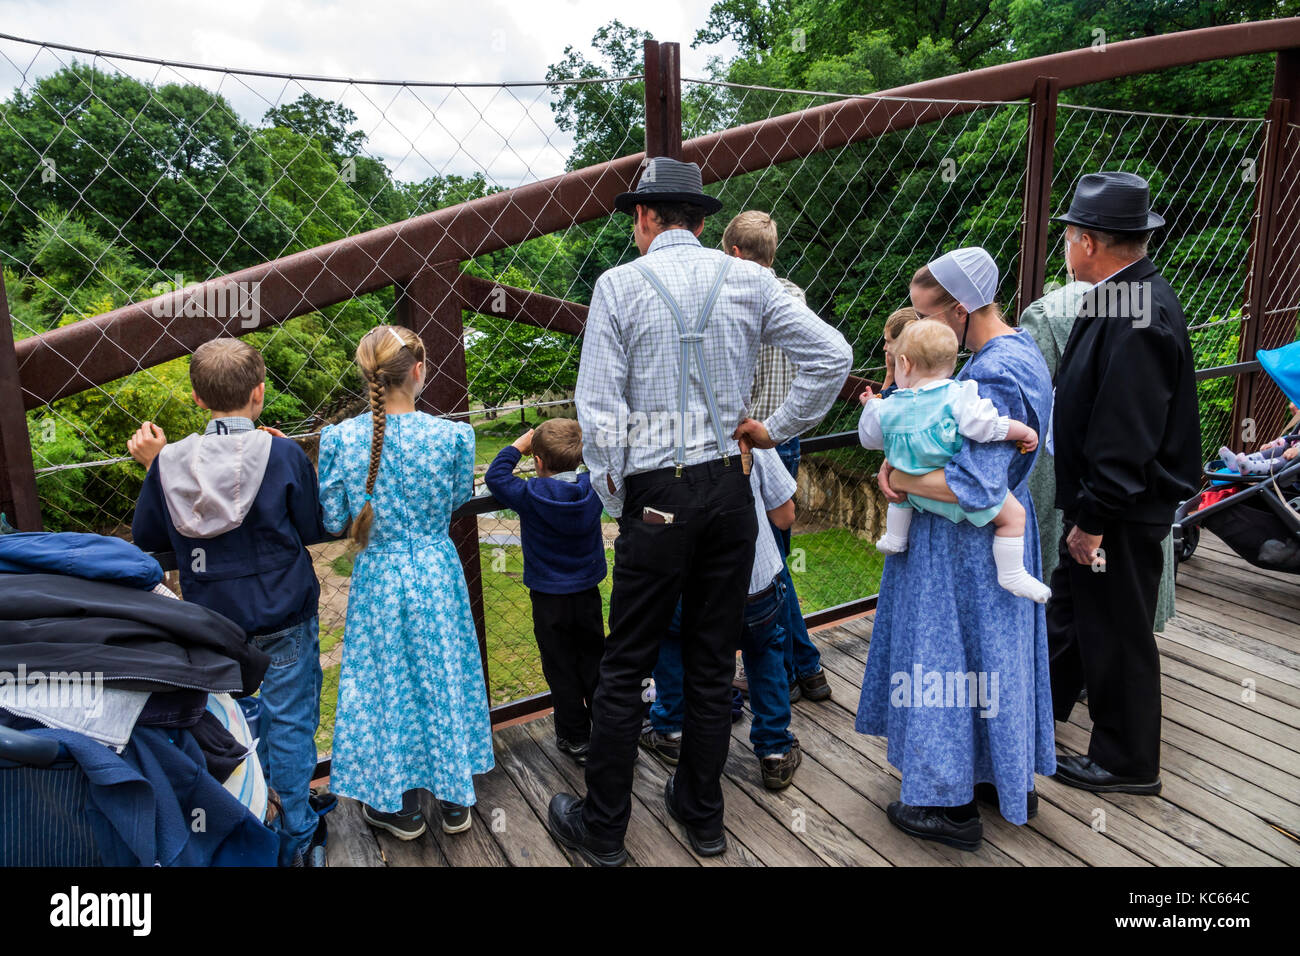 Washington DC District of Columbia National Zoo Mennonite family traditional dress father mother children - Stock Image